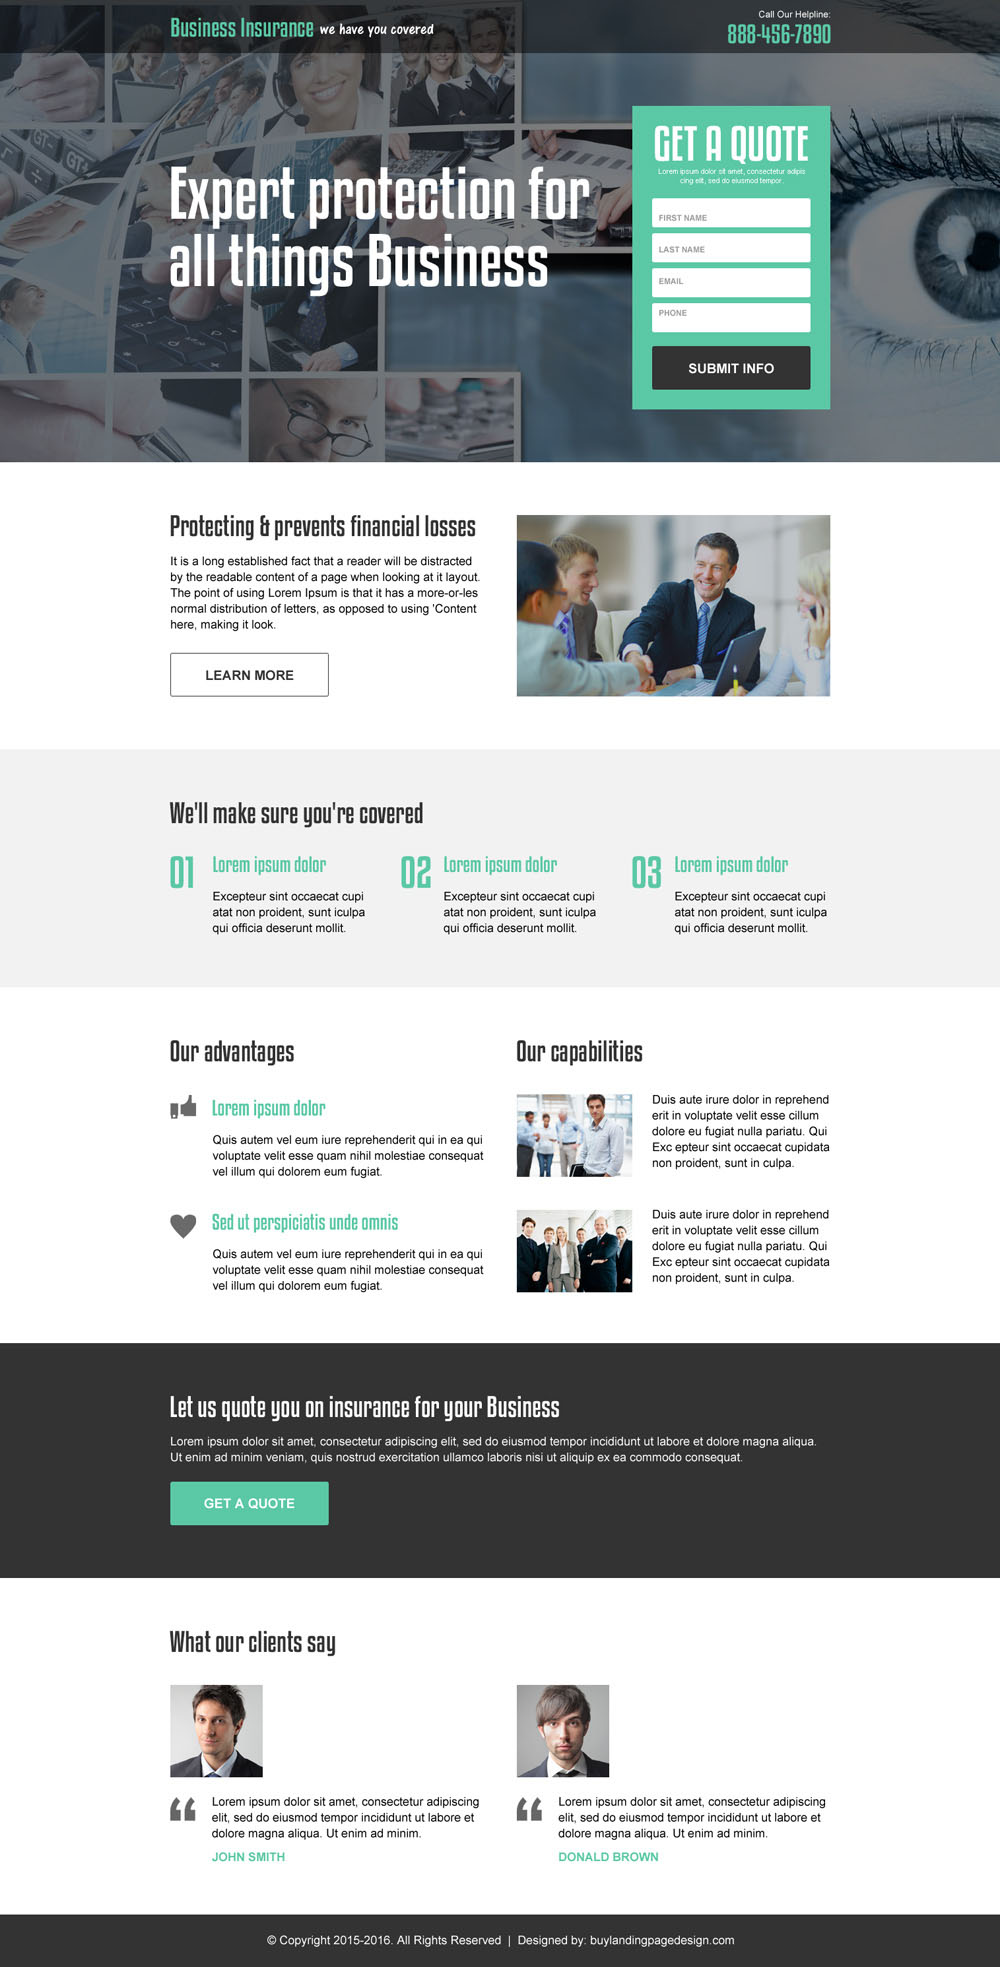 business-insurance-landing-page-design-to-capture-leads-for-expert-protection-001